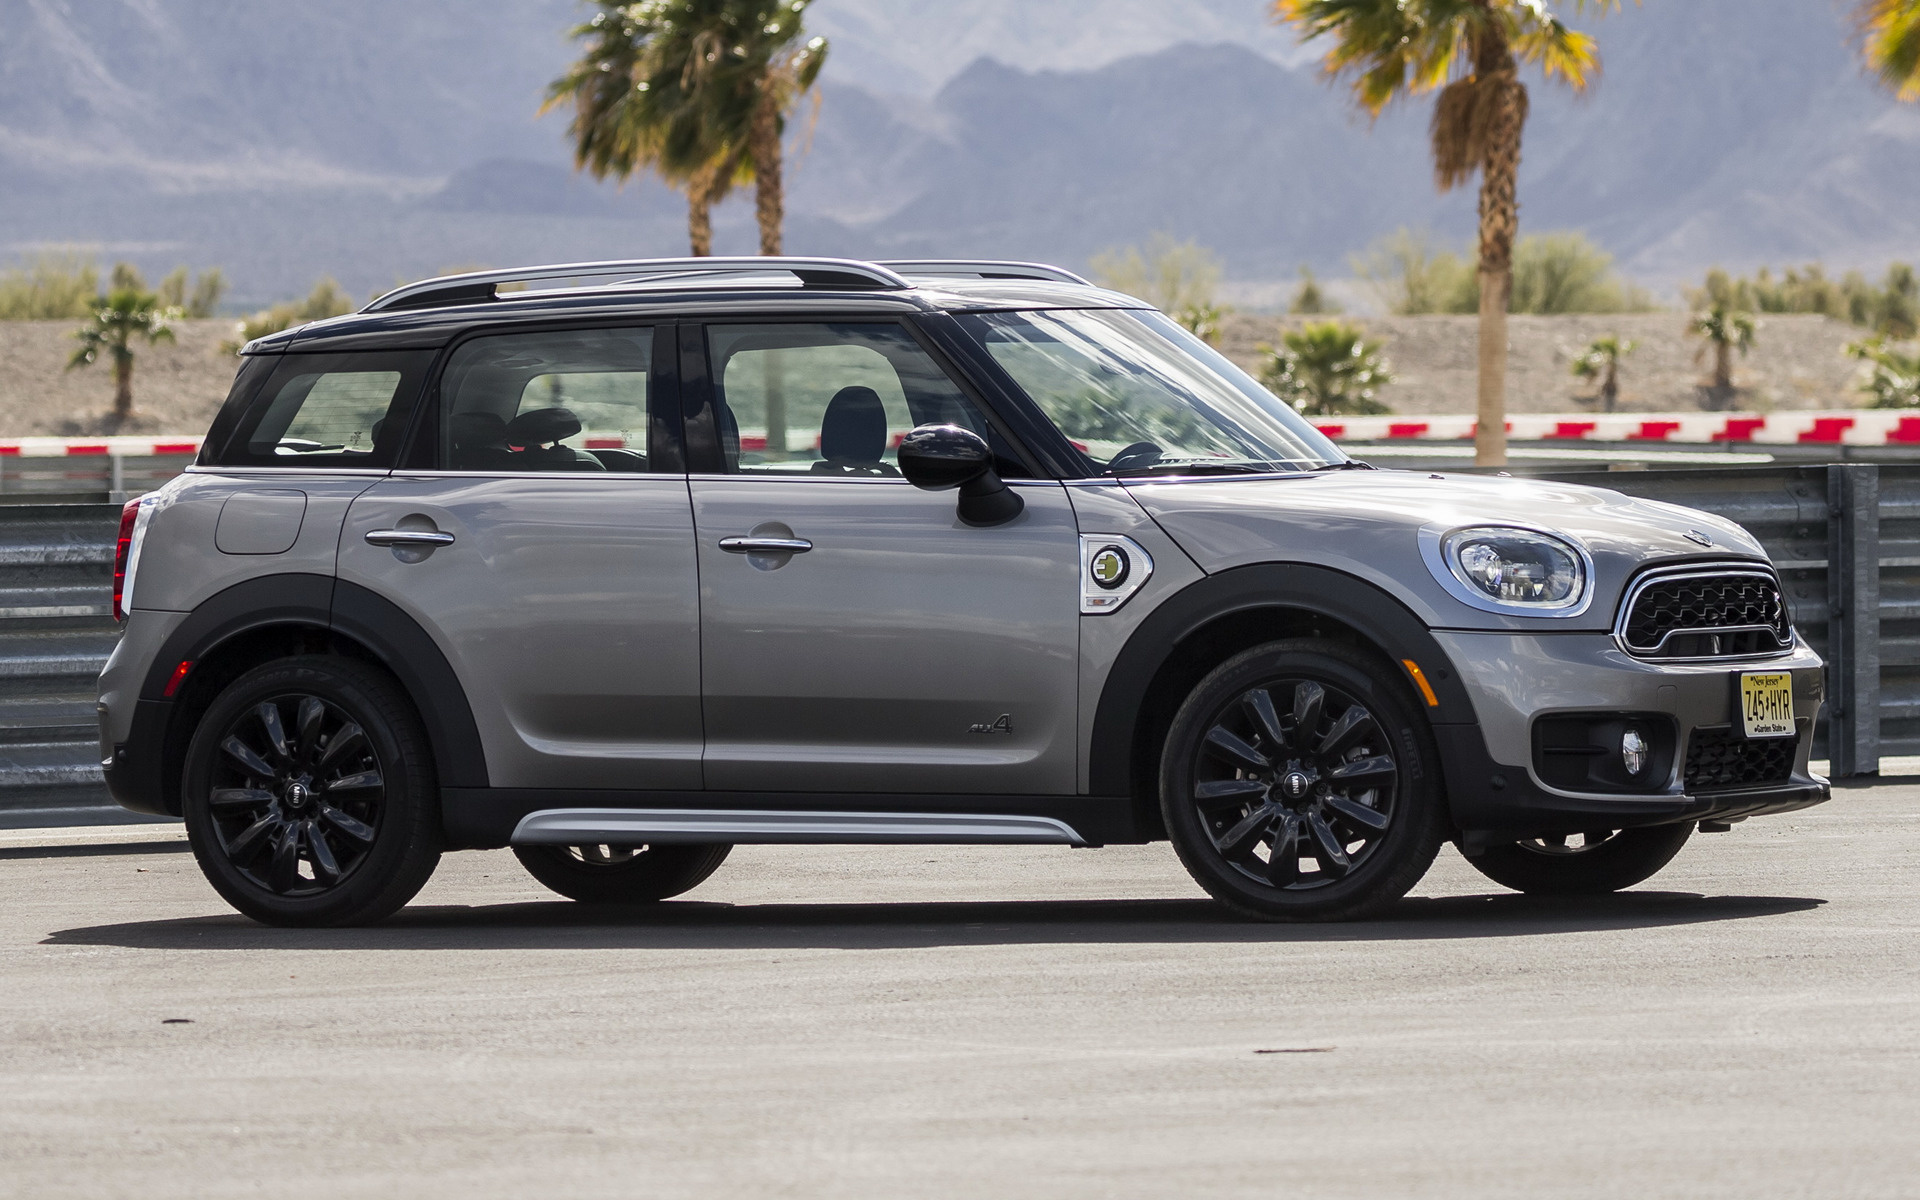 Bmw 3 2018 >> Mini Cooper S E Countryman (2018) US Wallpapers and HD Images - Car Pixel